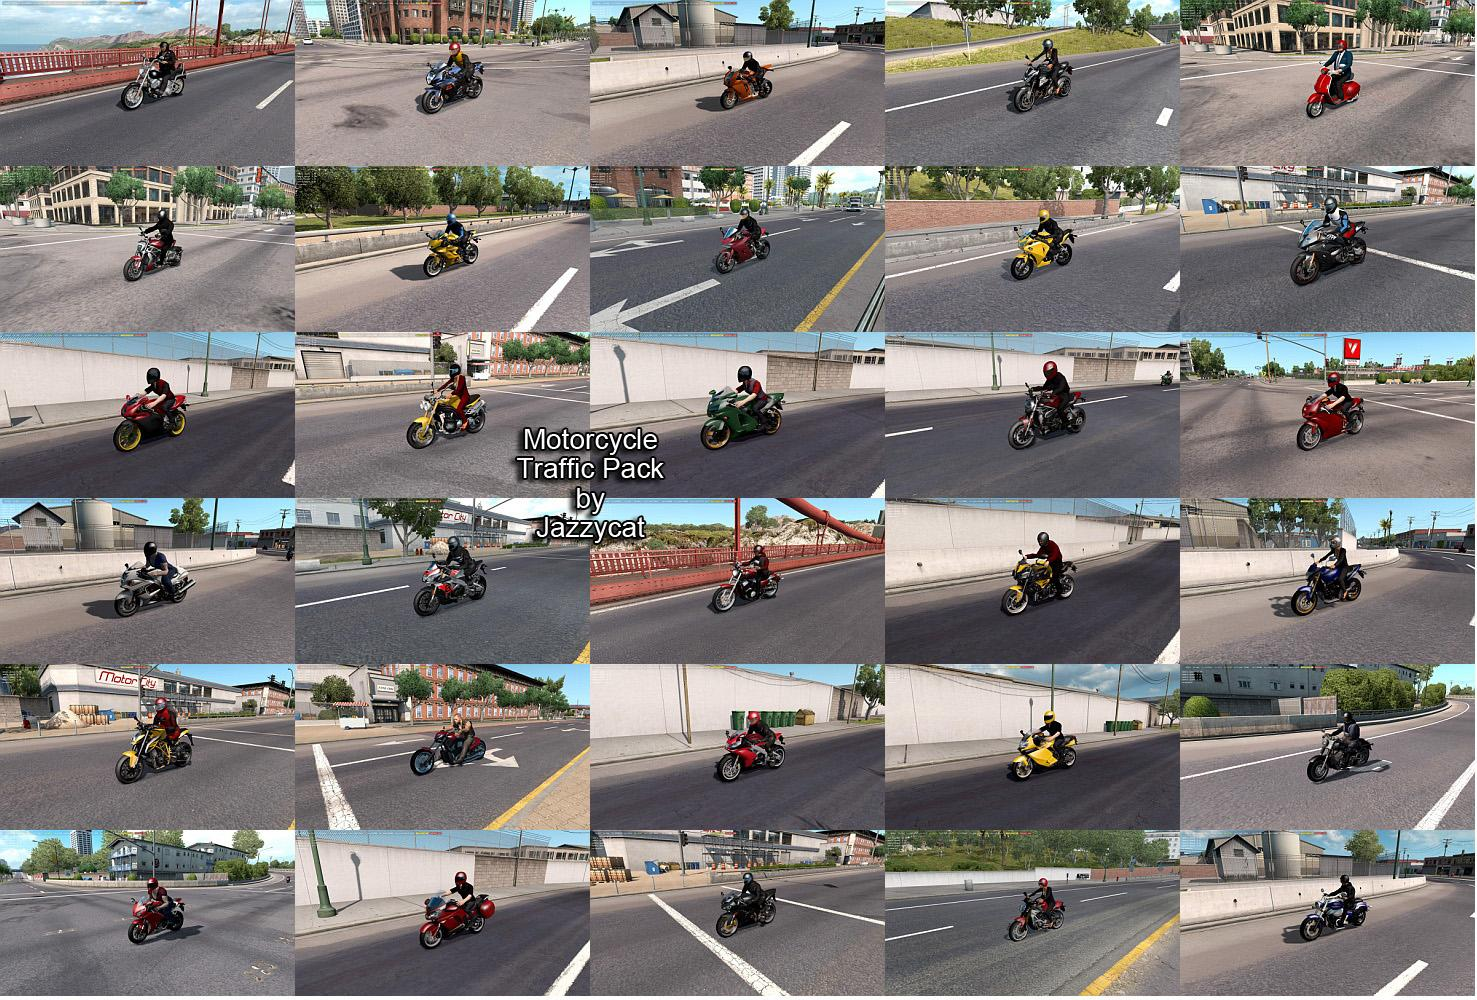 Motorcycle Traffic Pack by Jazzycat v3.3 Mod ATS